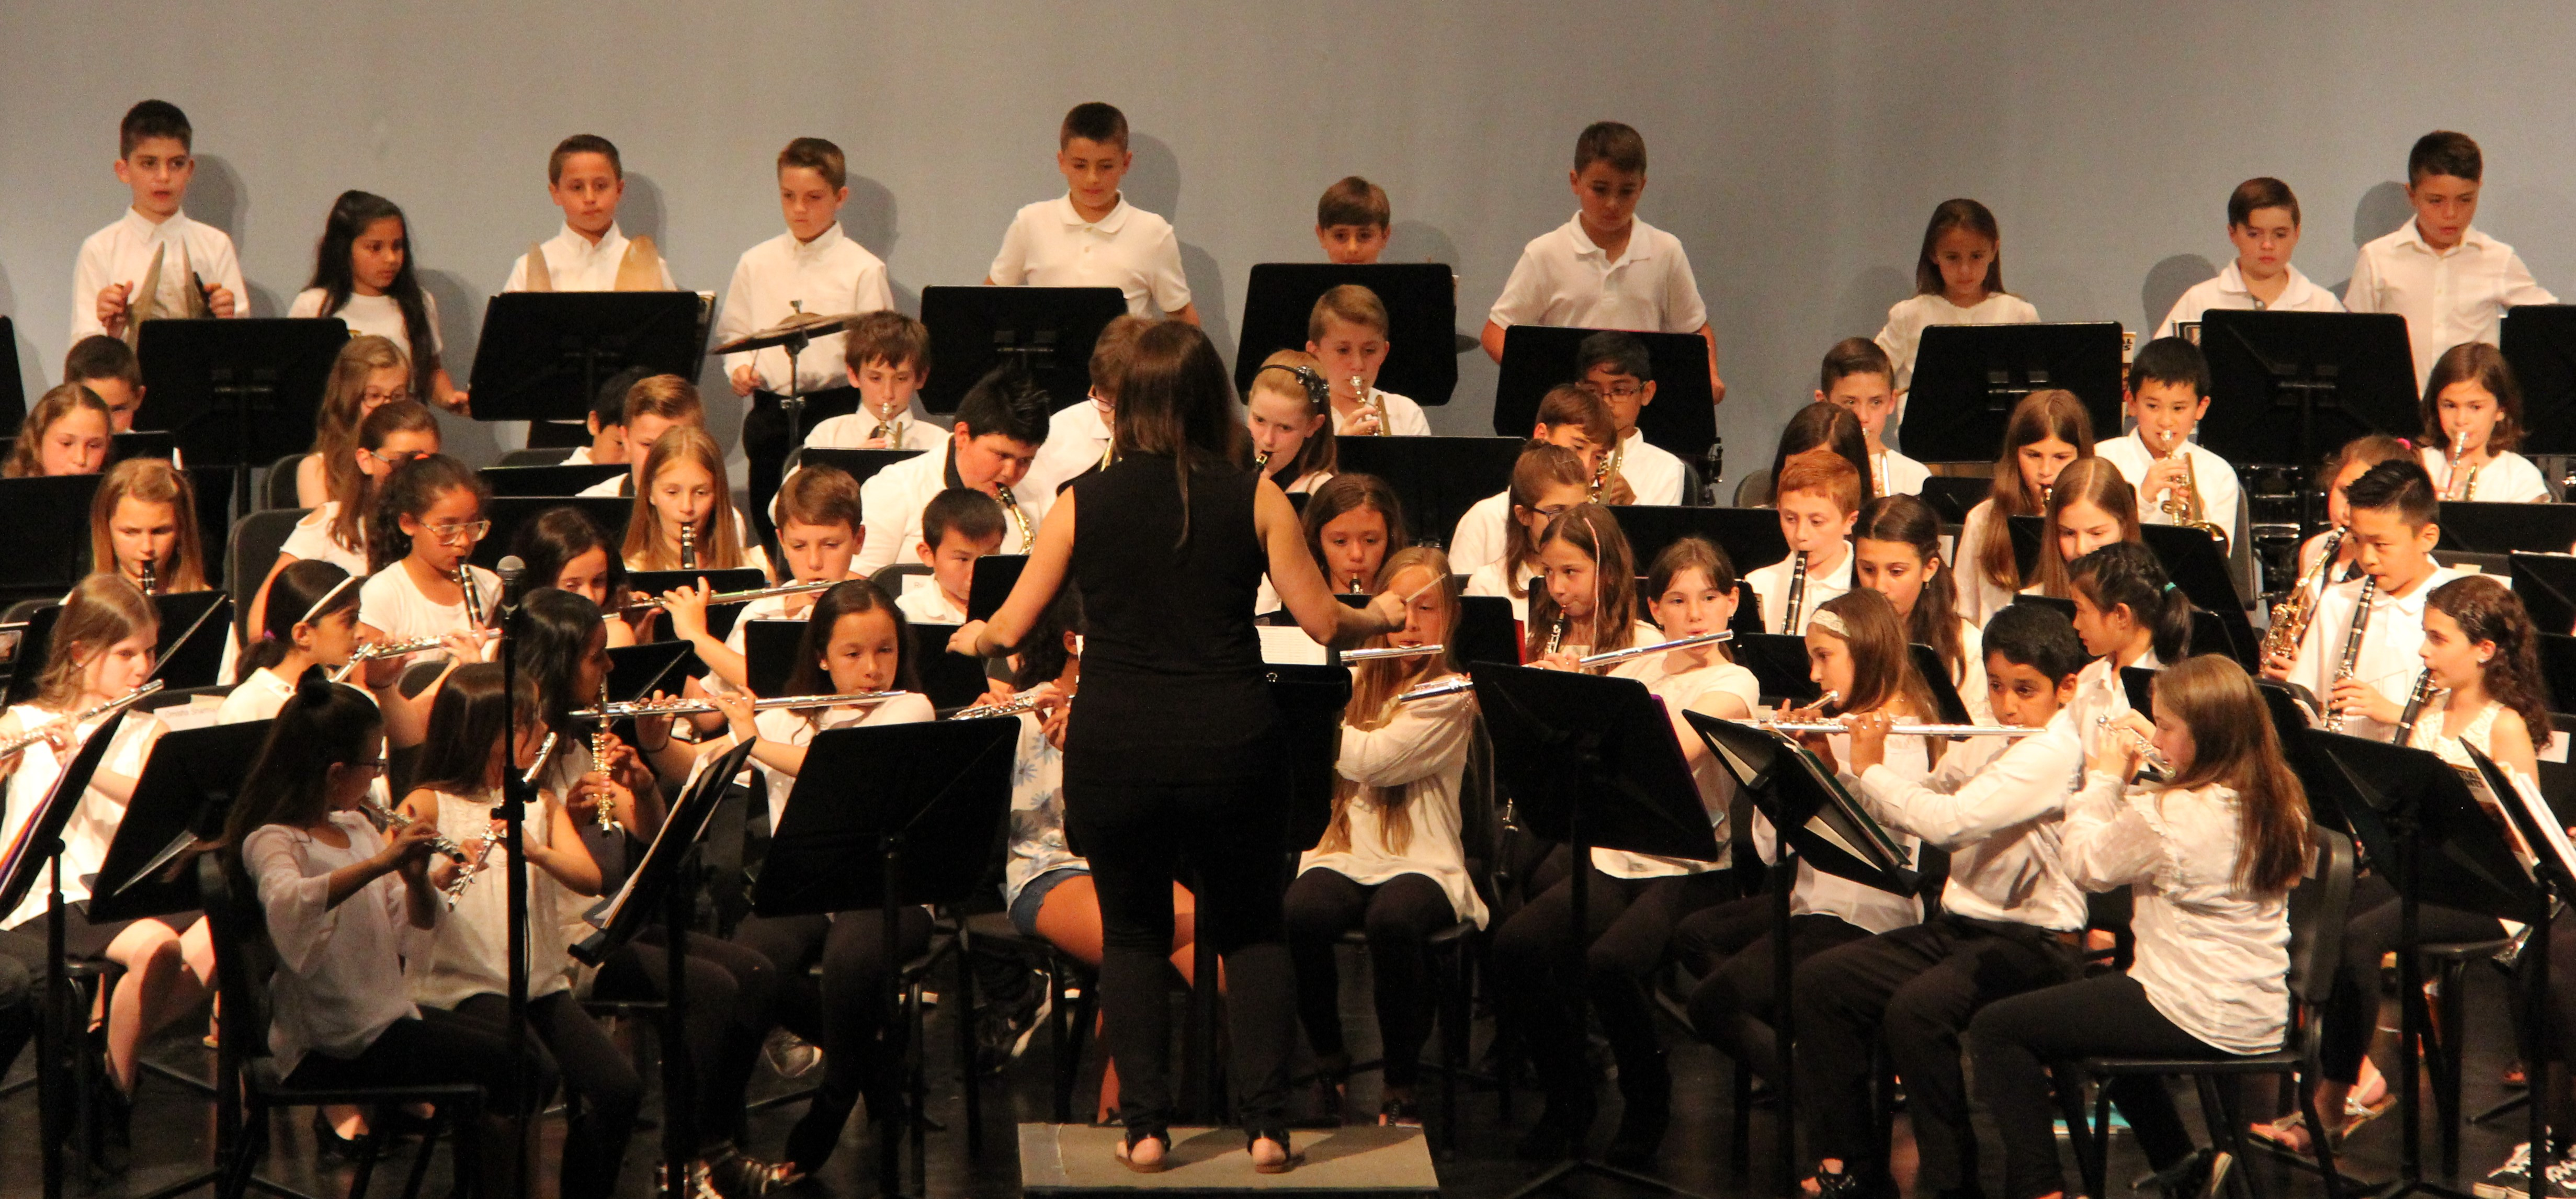 District Beg Band Orch Concert (22)